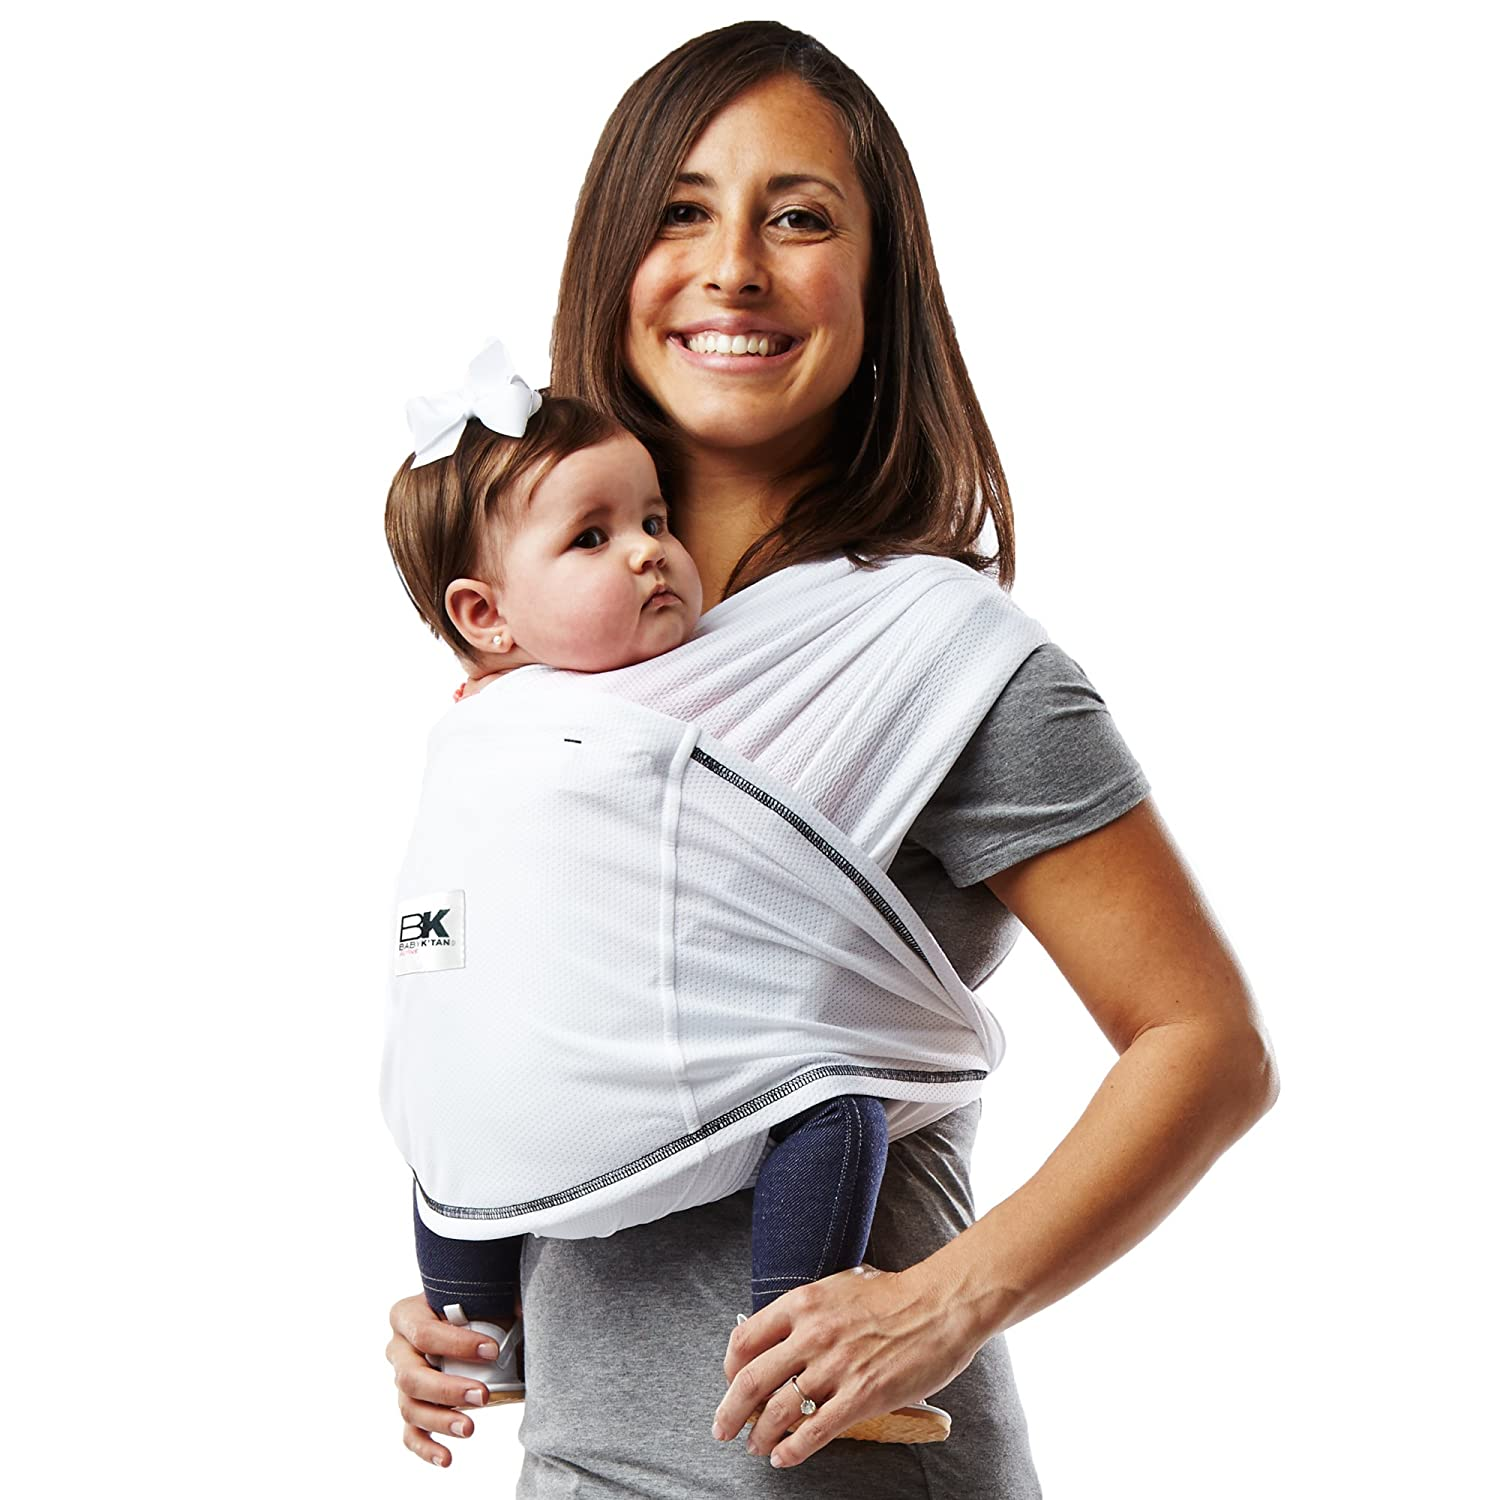 Baby K'tan ACTIVE Sport Mesh Wrap Baby Carrier, Black, Large Baby K'tan BKBC-ACTIVE-BL-L